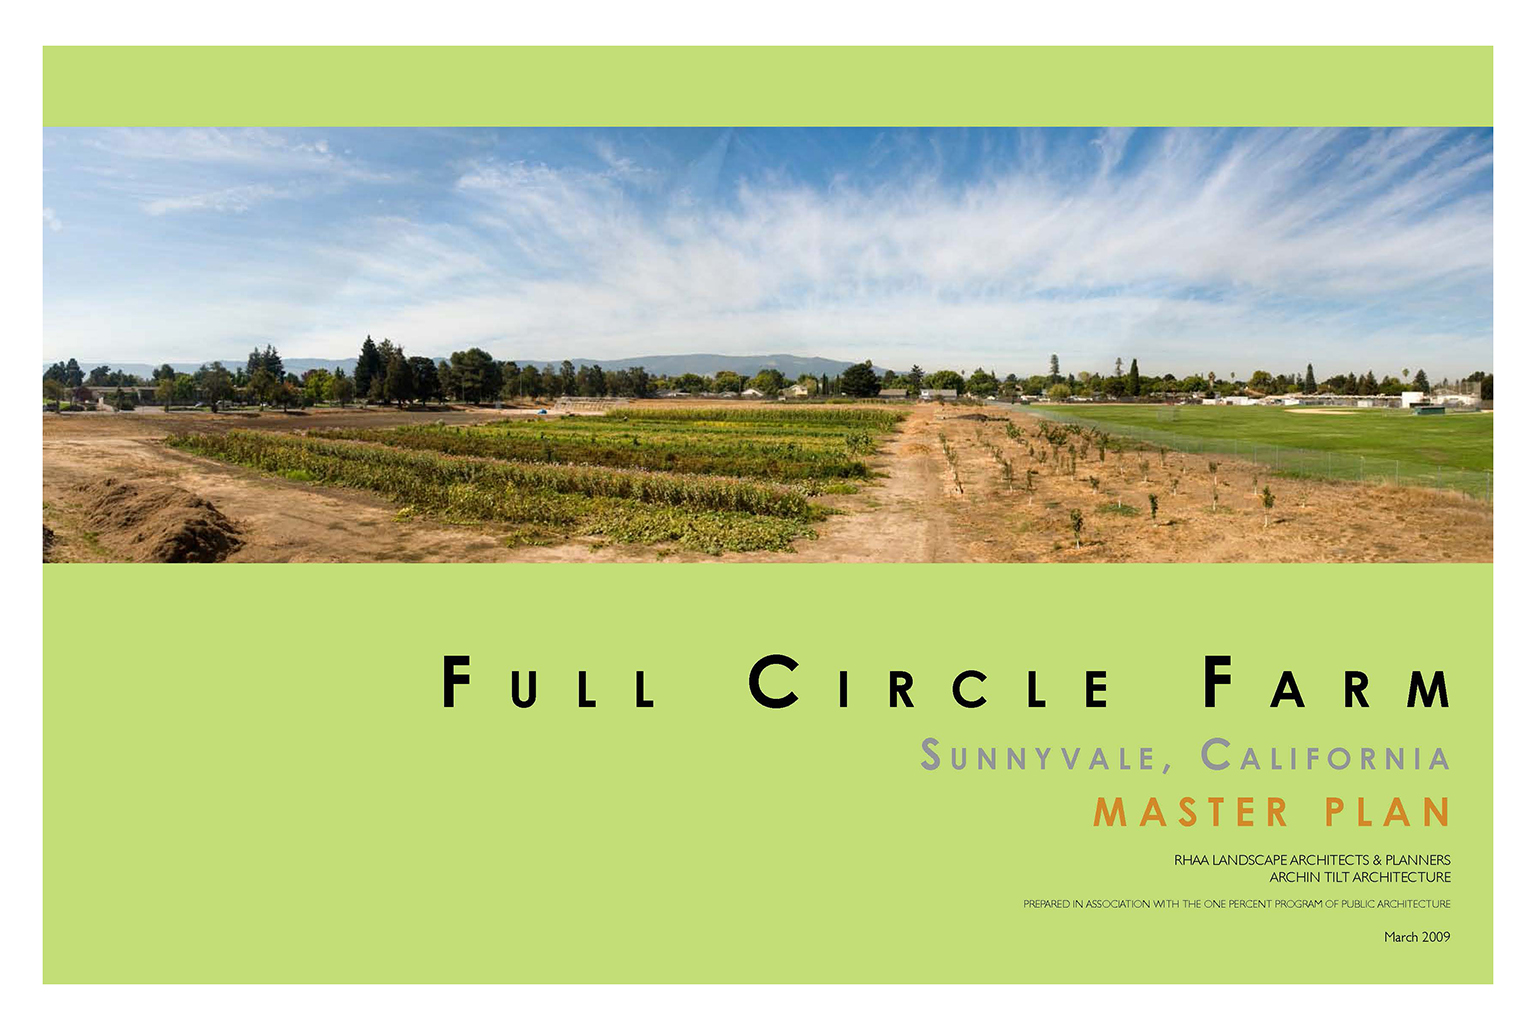 Full Circle Farm Master Plan